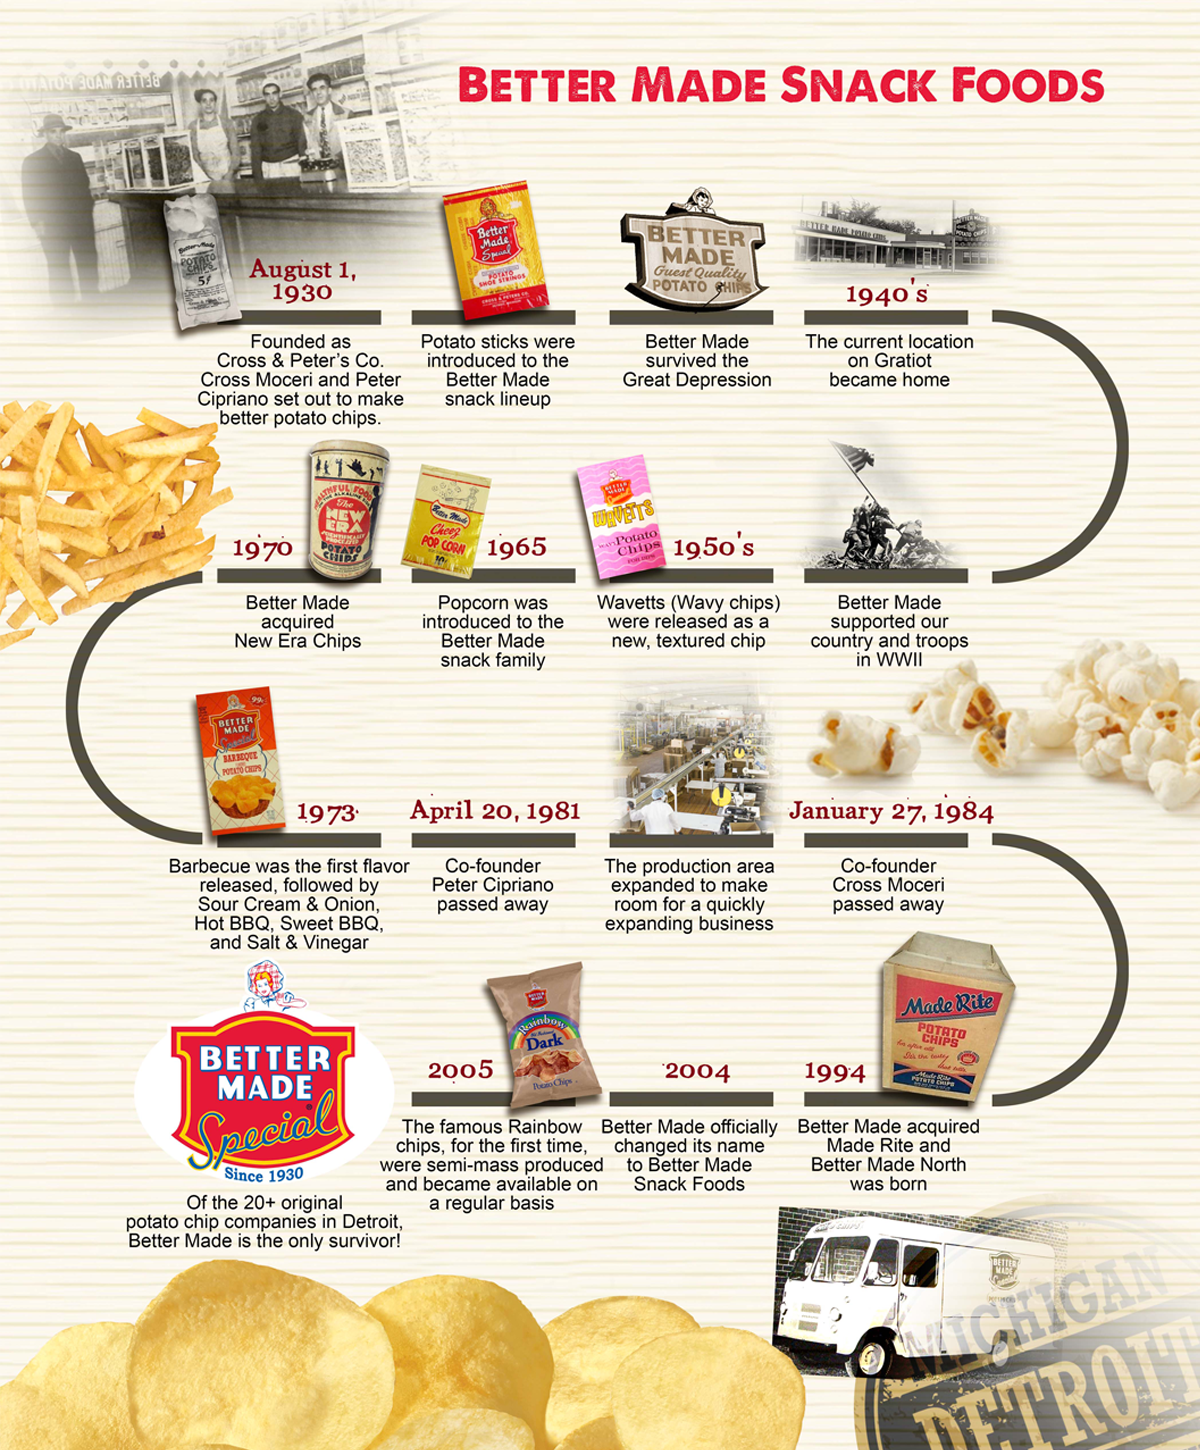 History of Bettermade